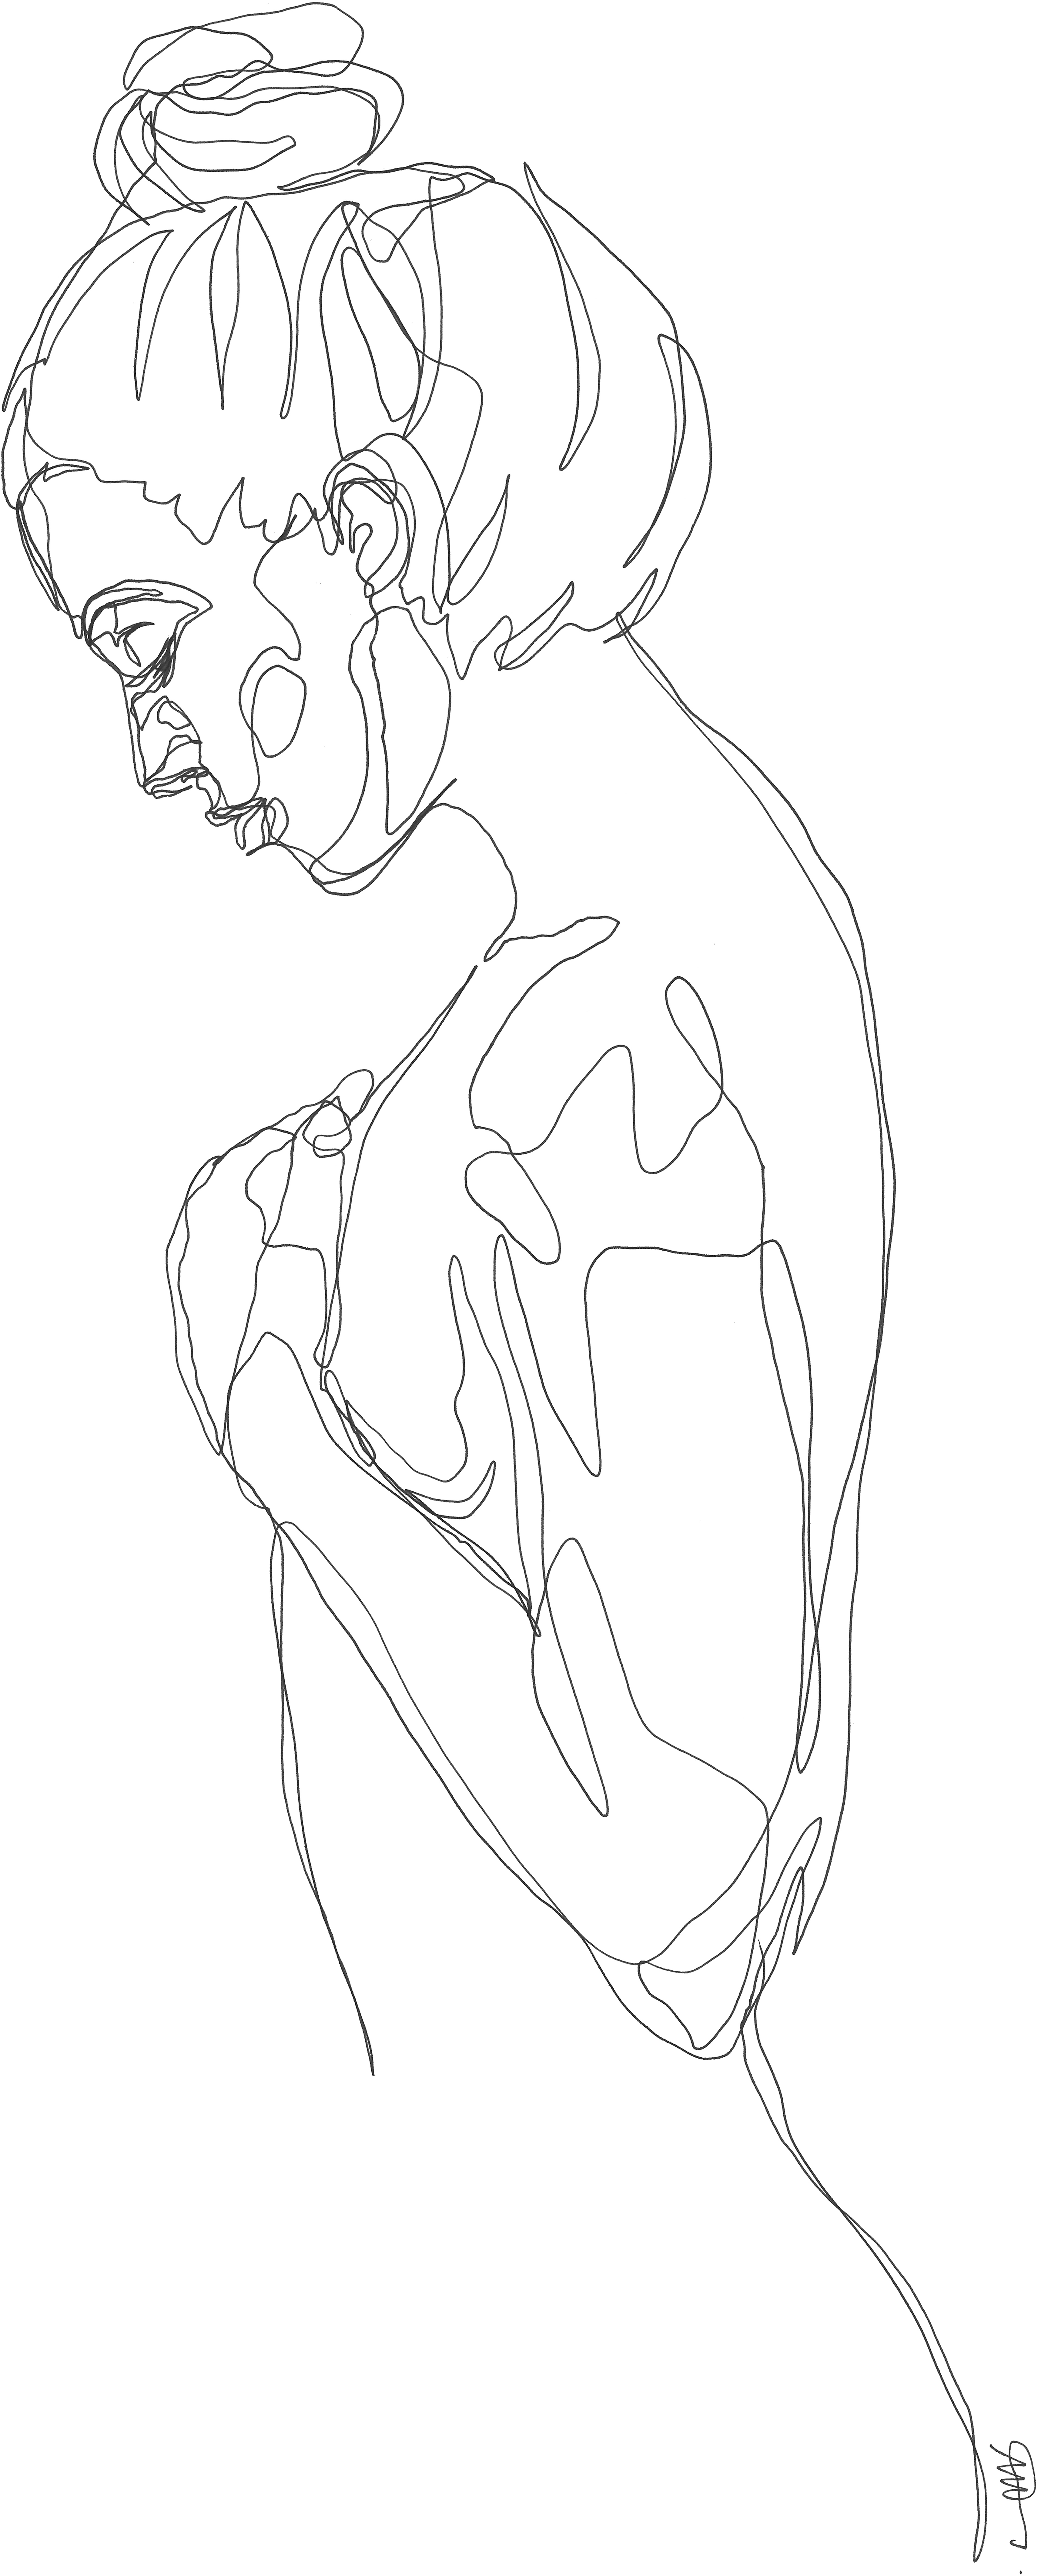 Martin tardy body pinterest. Mozart drawing easy vector transparent library